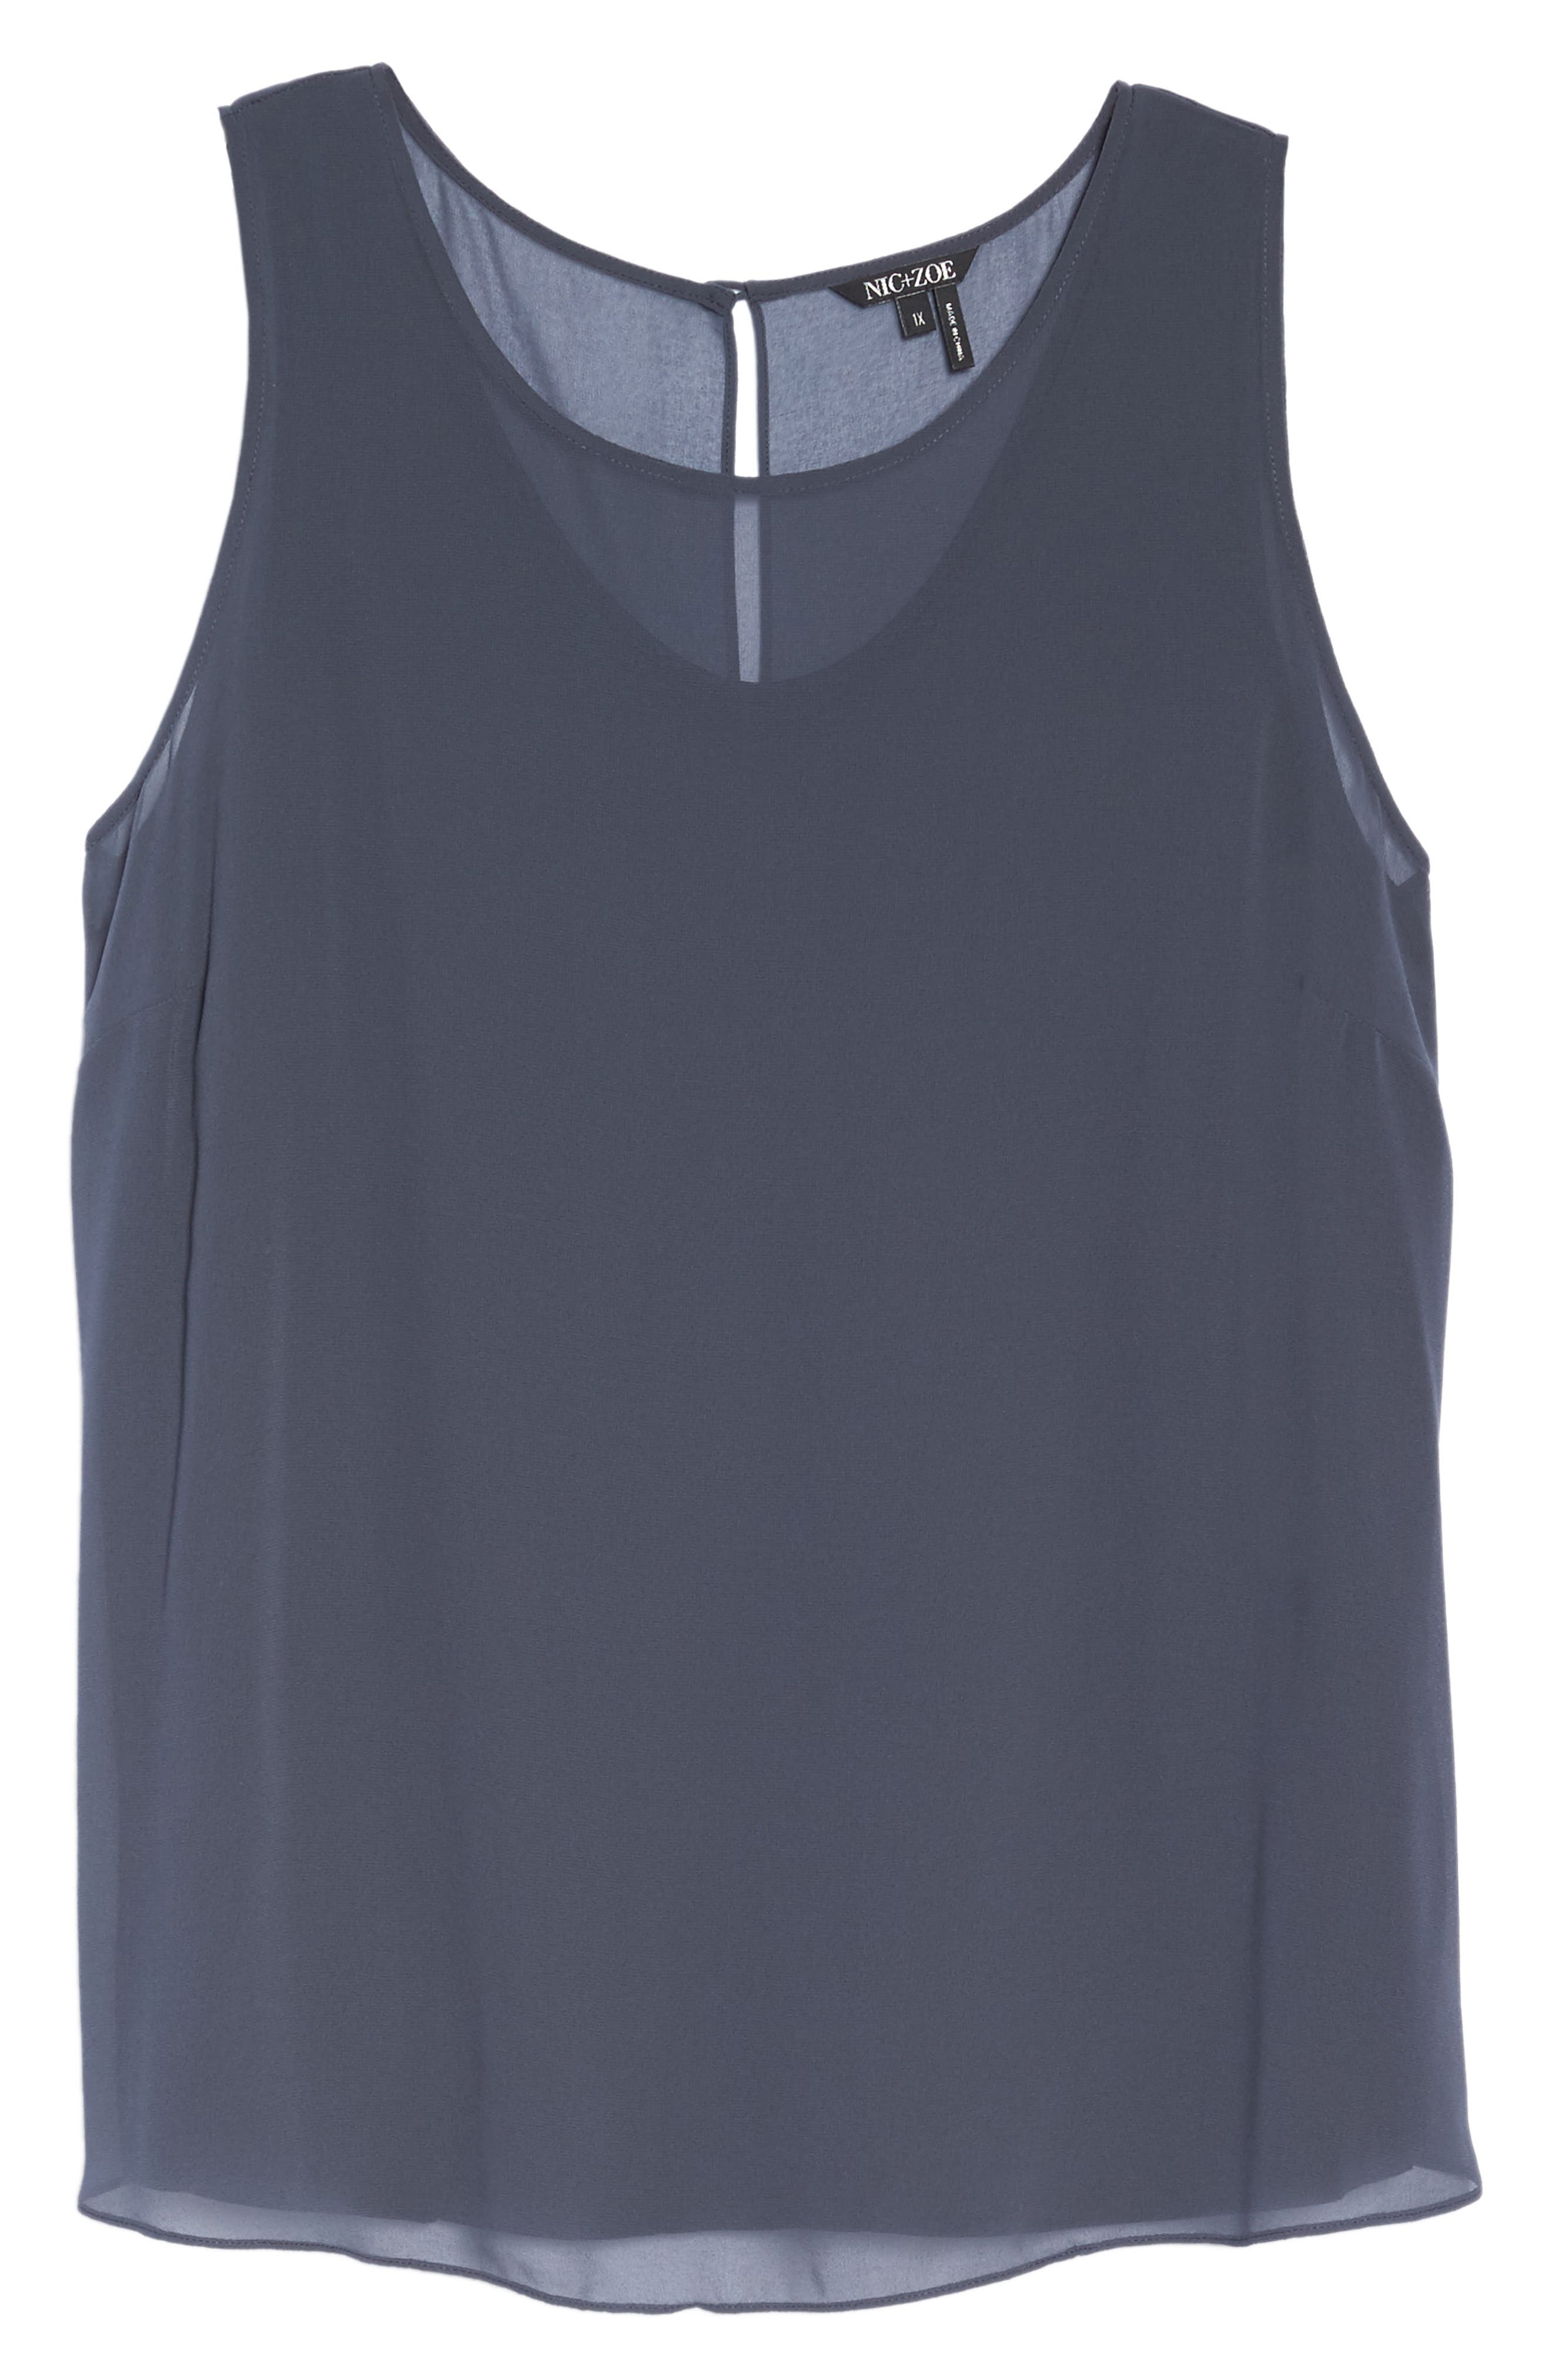 Sheer Collection Top,                             Alternate thumbnail 6, color,                             020